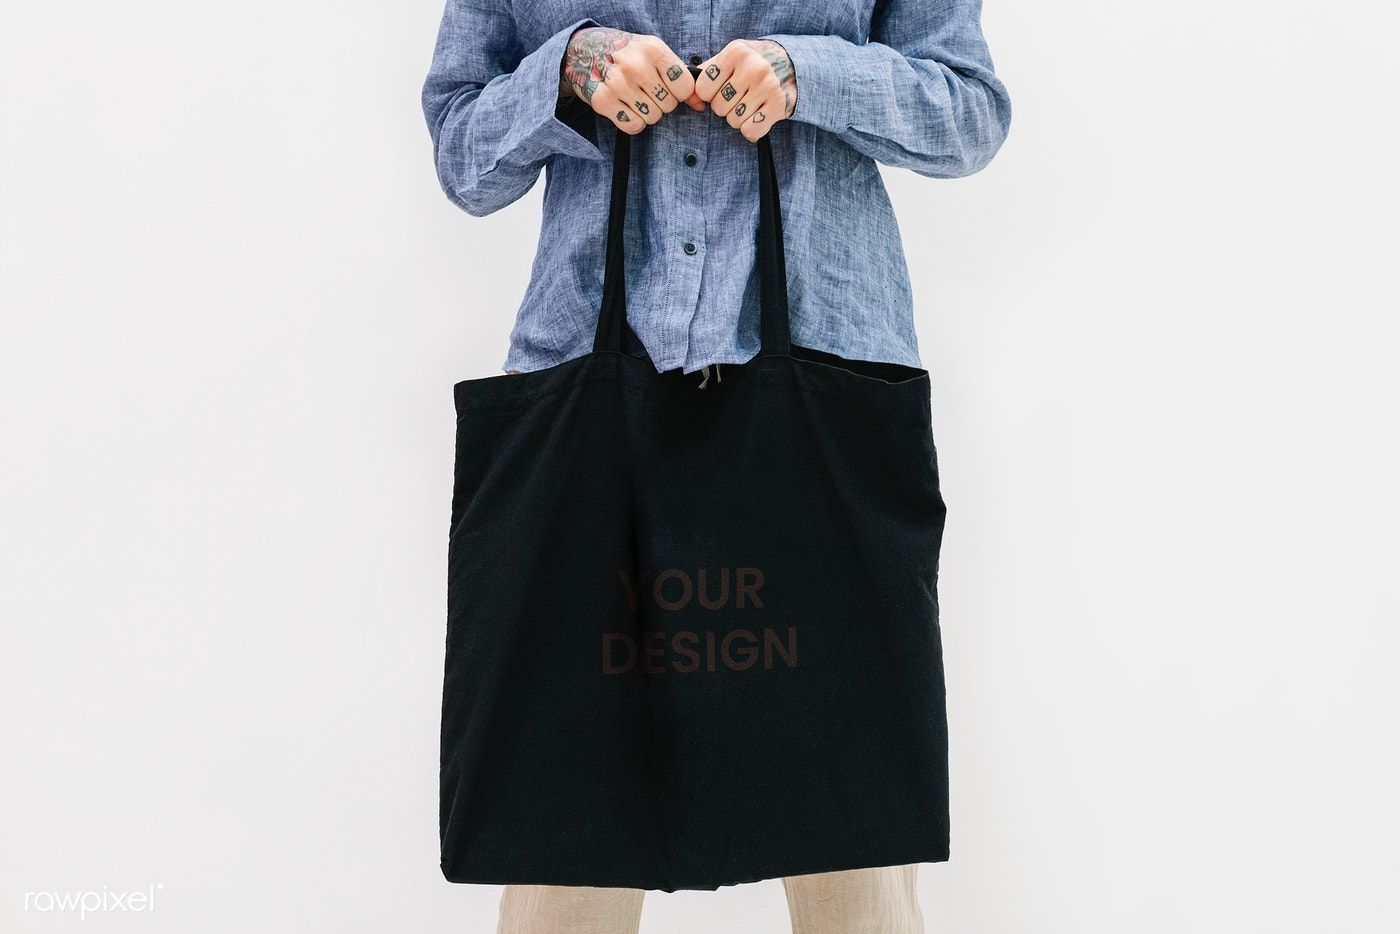 Download Download Premium Psd Of Tattooed Woman In A Blue Linen Shirt Holding A Linen Shirt Cotton Shopping Bags Black Tote Bag